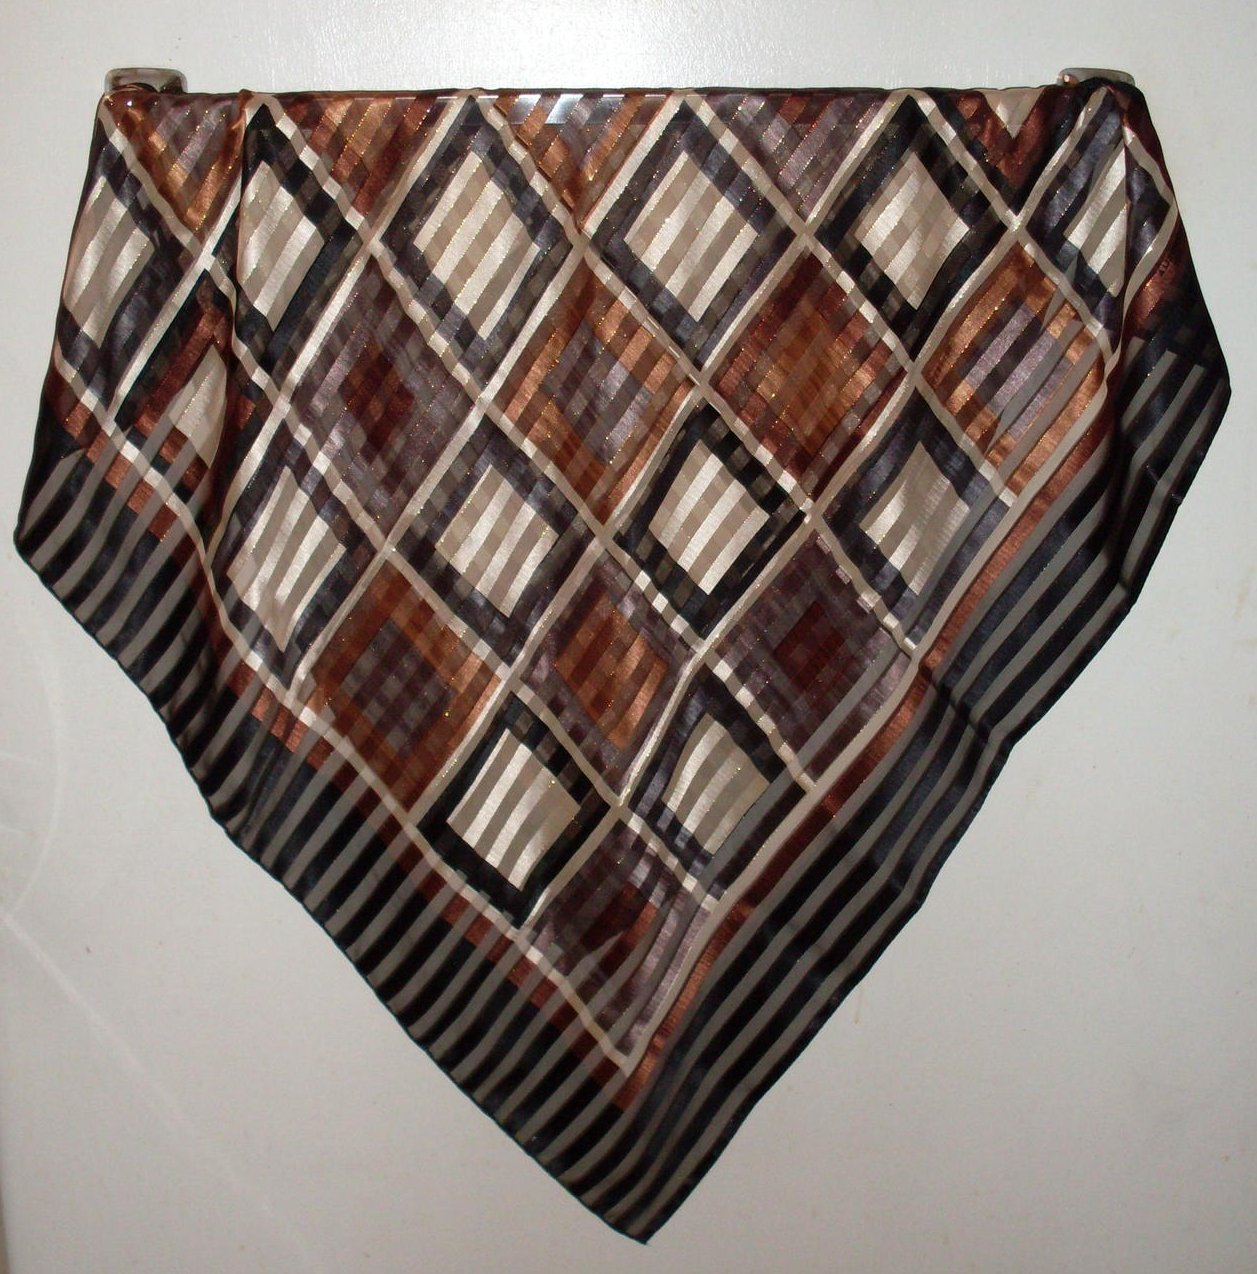 Geometric Blocks and Stripes Scarf Black Brown White 36 X 34